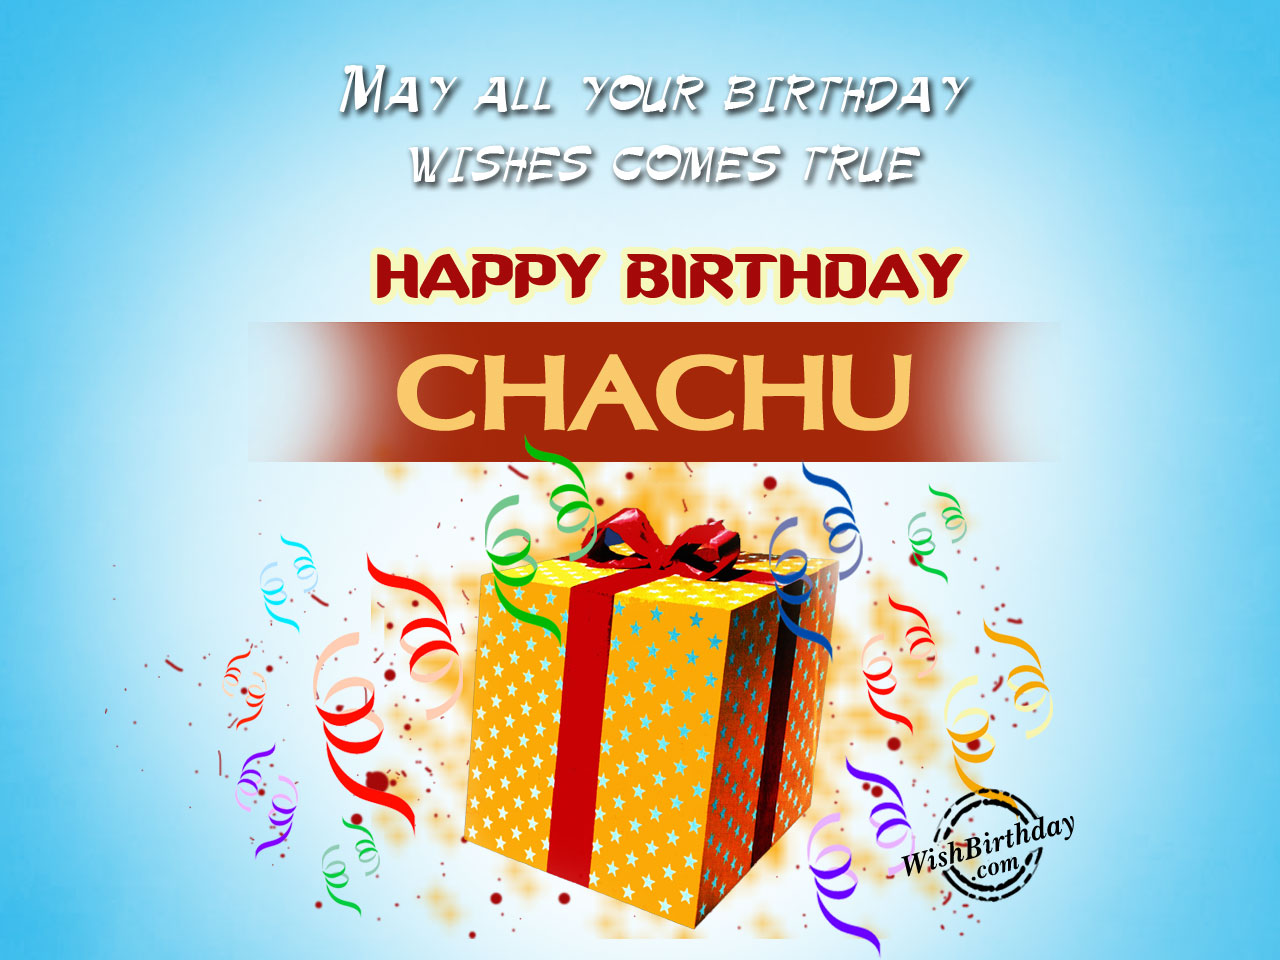 birthday card for chachu ; May-all-your-wishes-comes-true-chachu